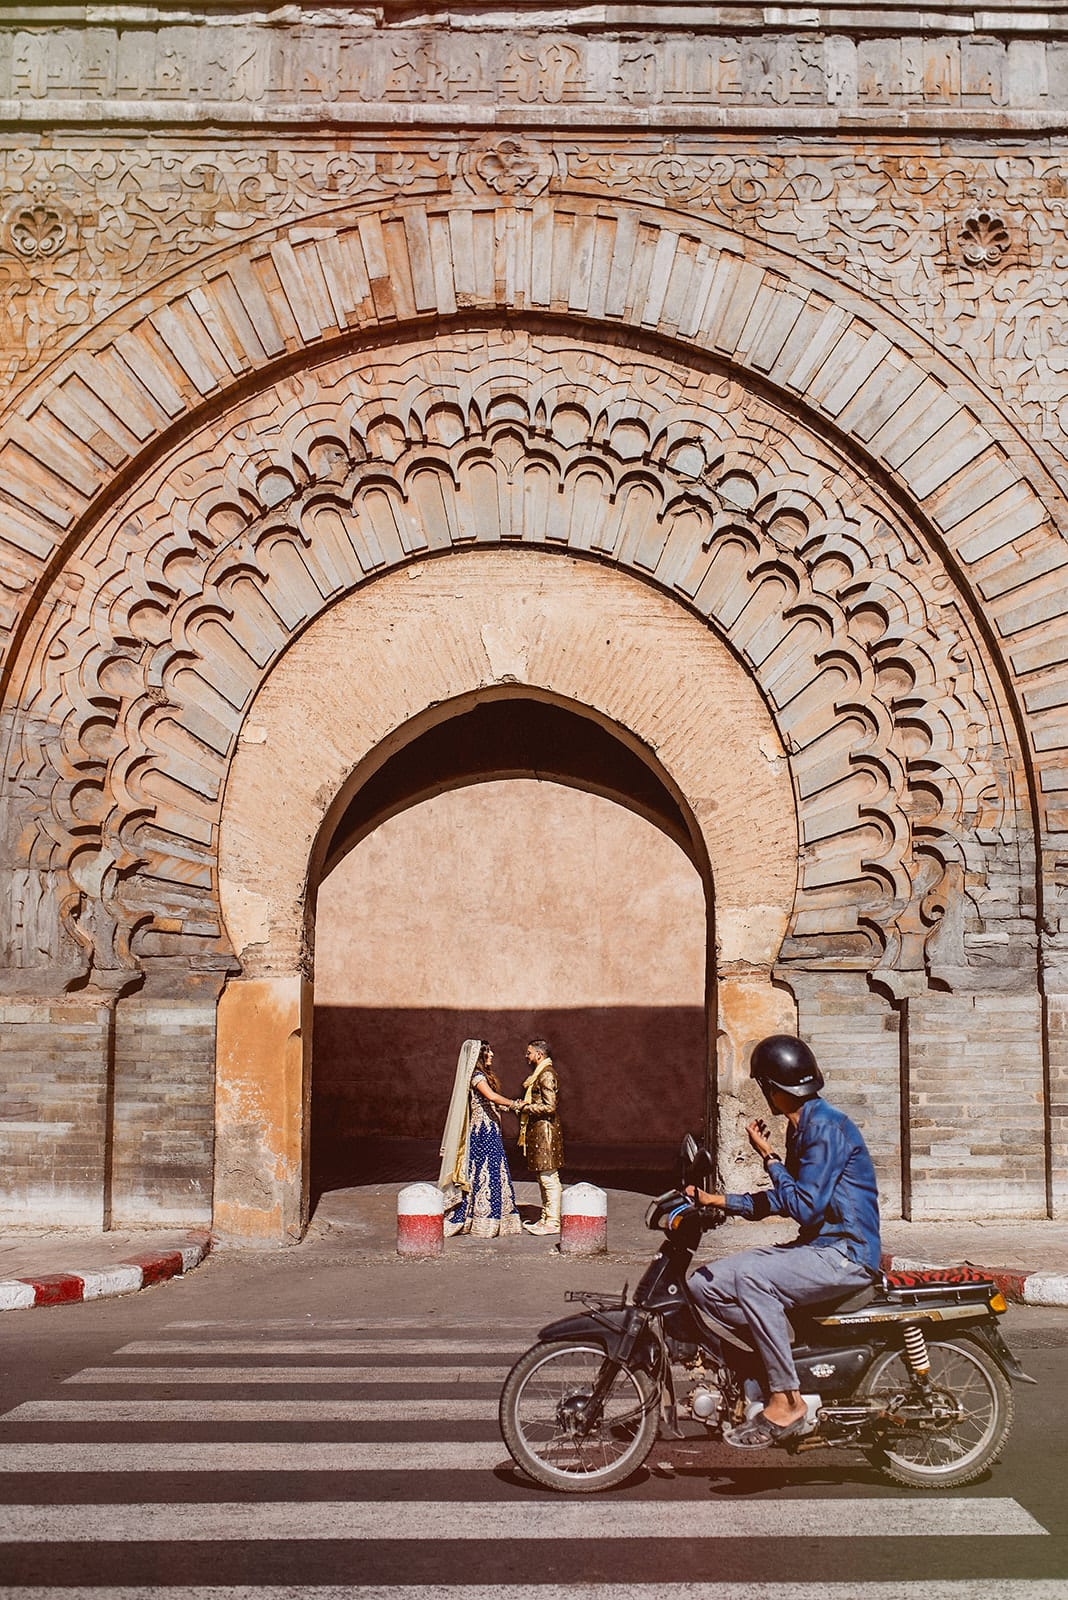 A Motorcyclist looks at the wedding couple standing in the centre of the Bab Agnaou city gate in Marrakech